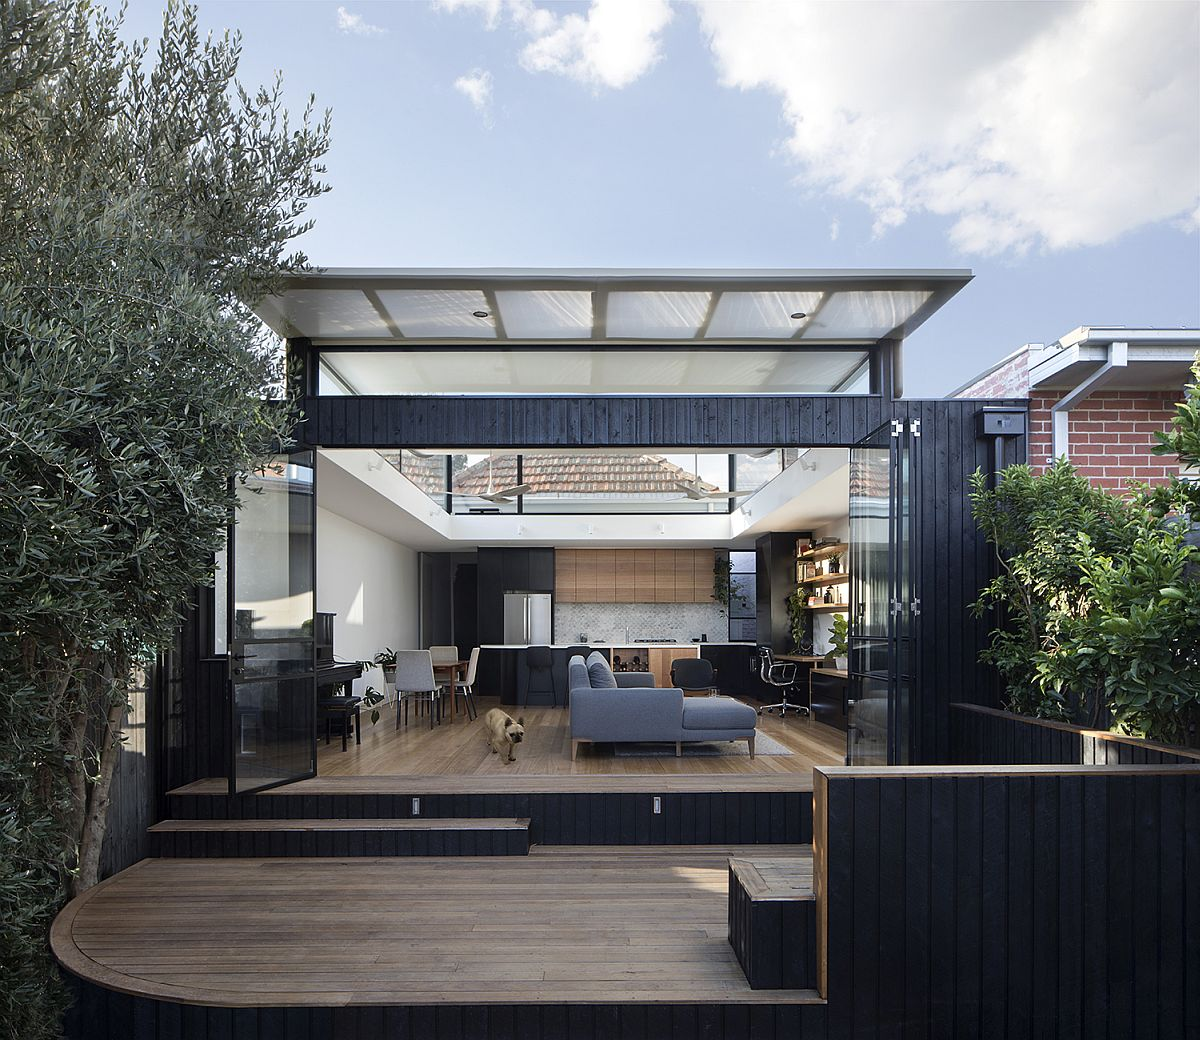 Contemporary rear extension of brick house in Melbourne with curved roof Roof that Curves Upwards Brings Light into This Revitalized Aussie Home